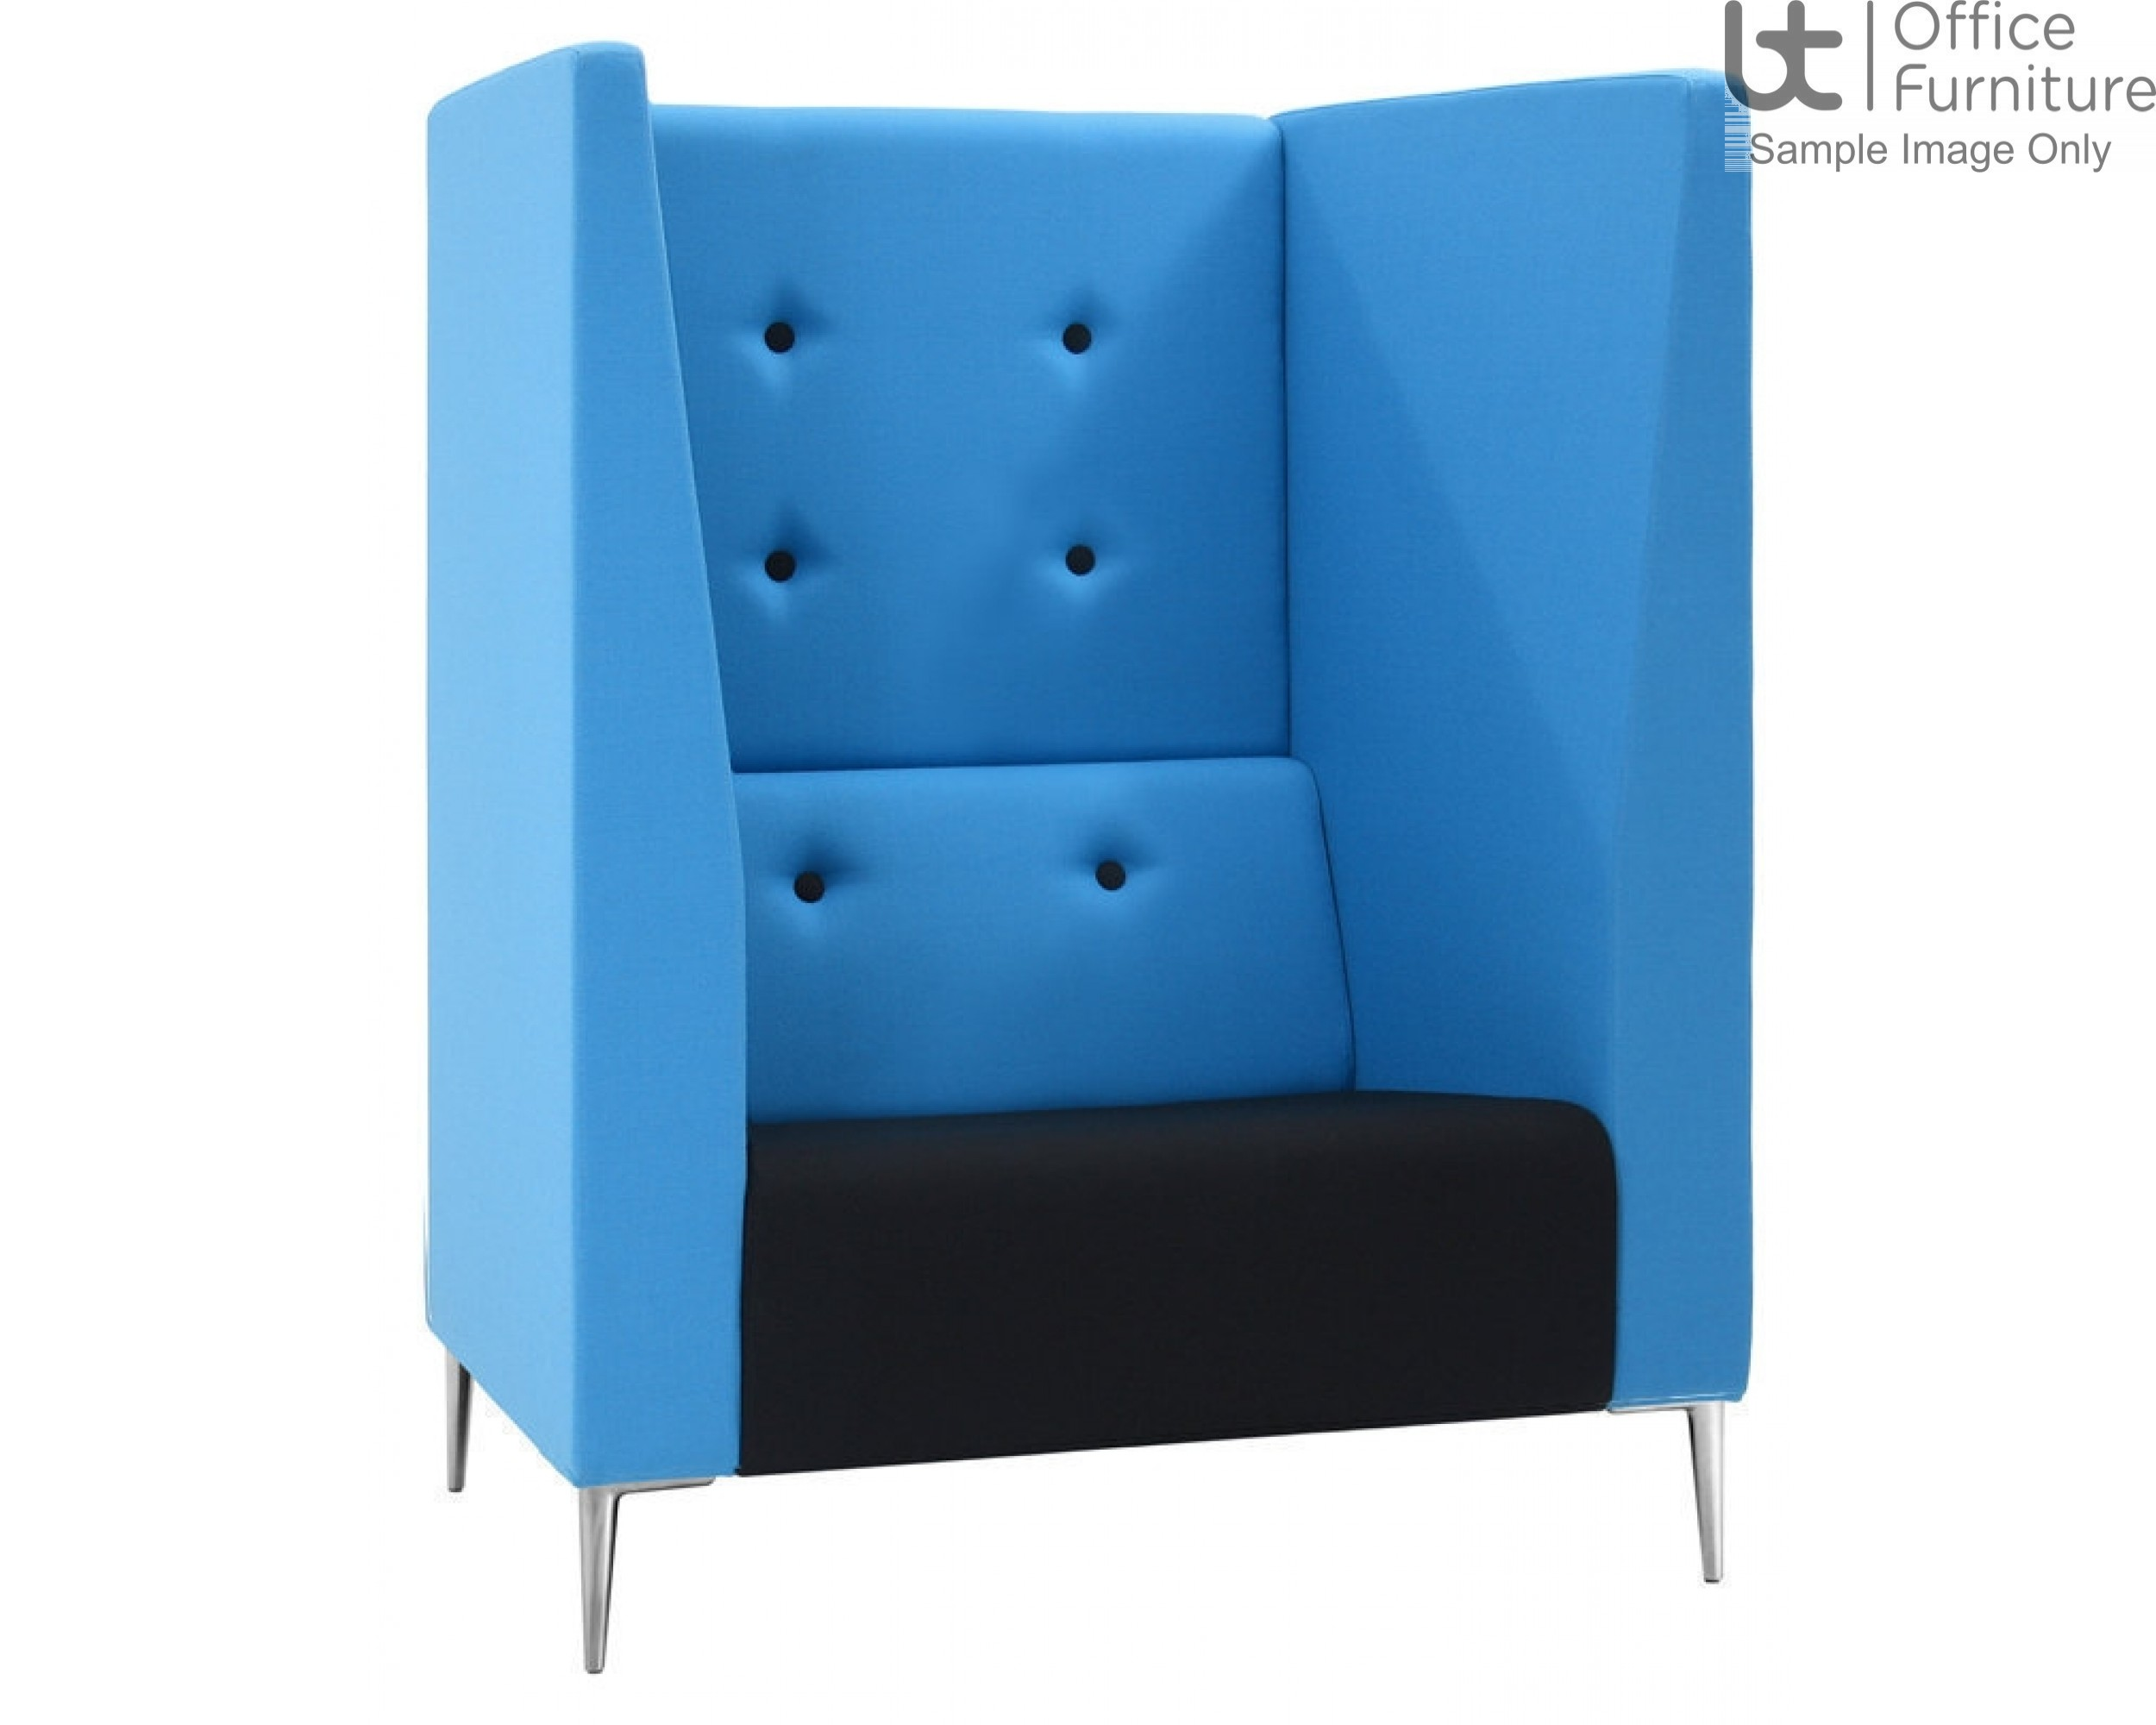 Verco Pod/Booth - Jensen-Up Single Unit with a High Acoustic Surround